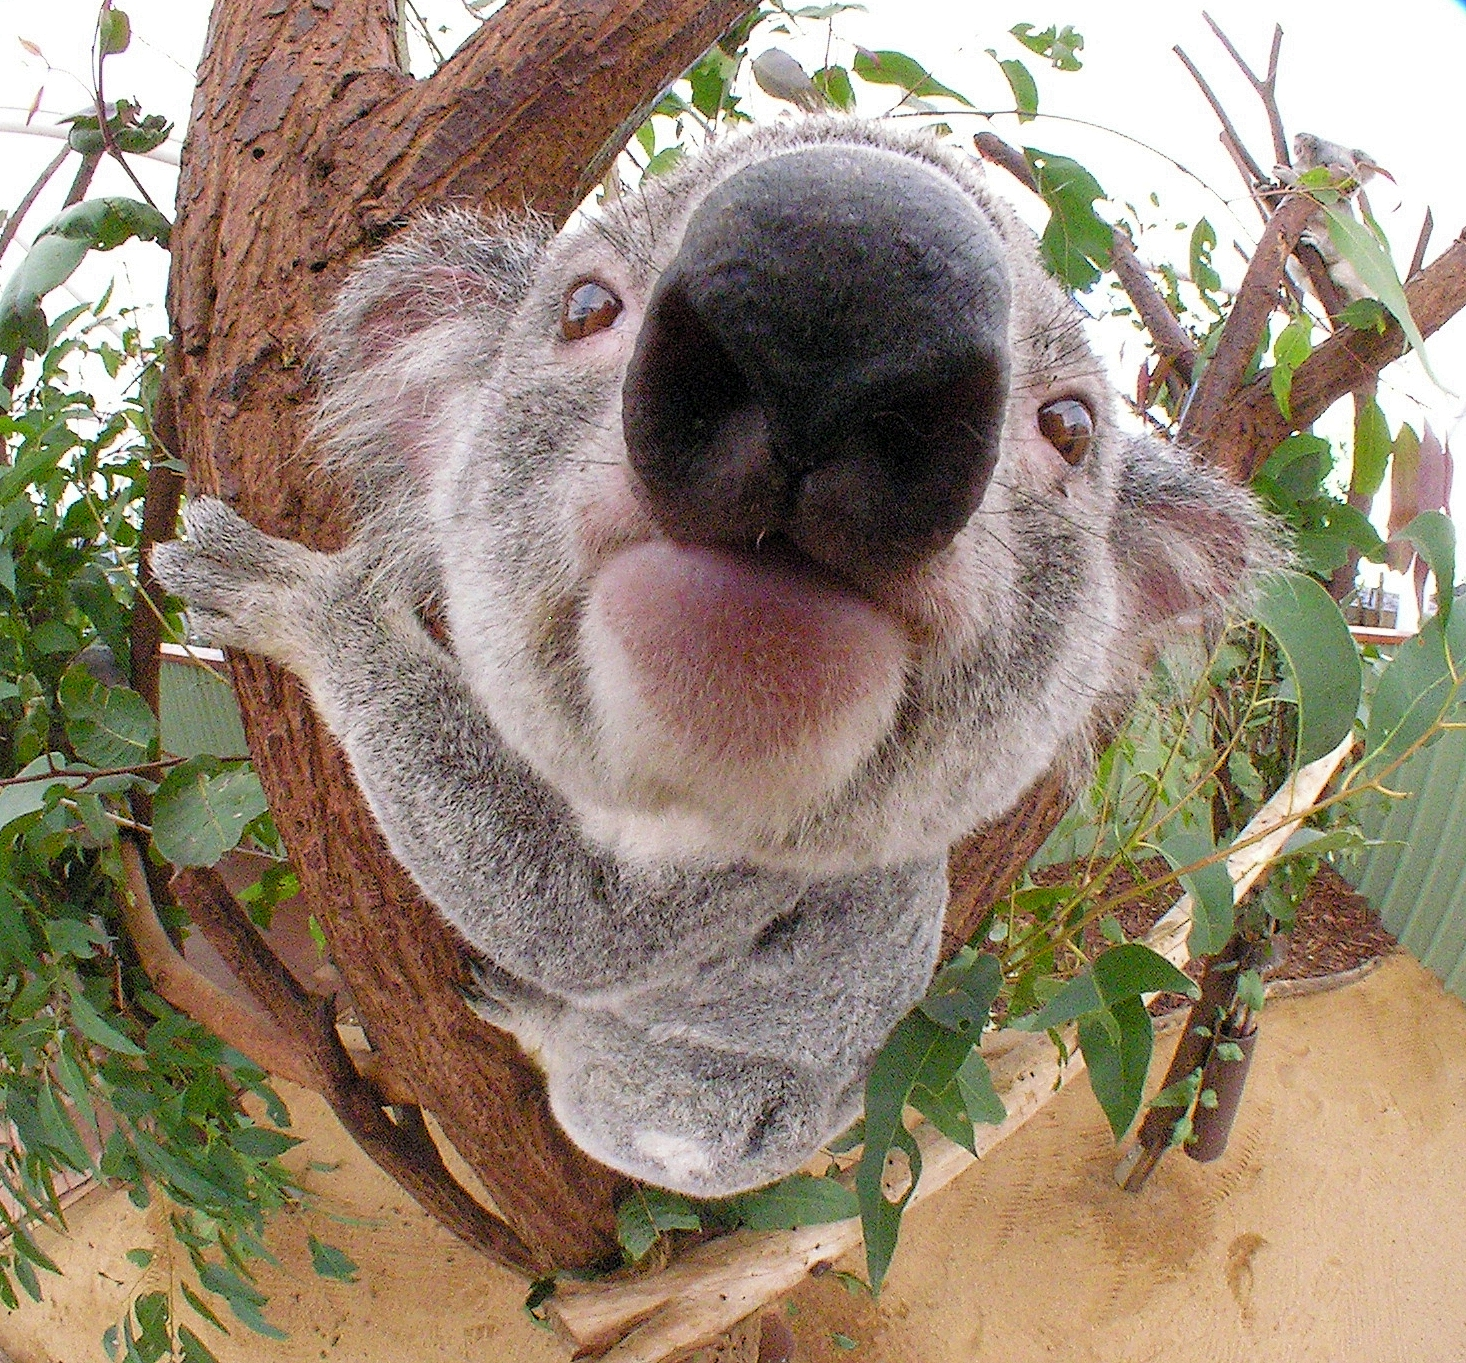 australia images big nose koala hd wallpaper and